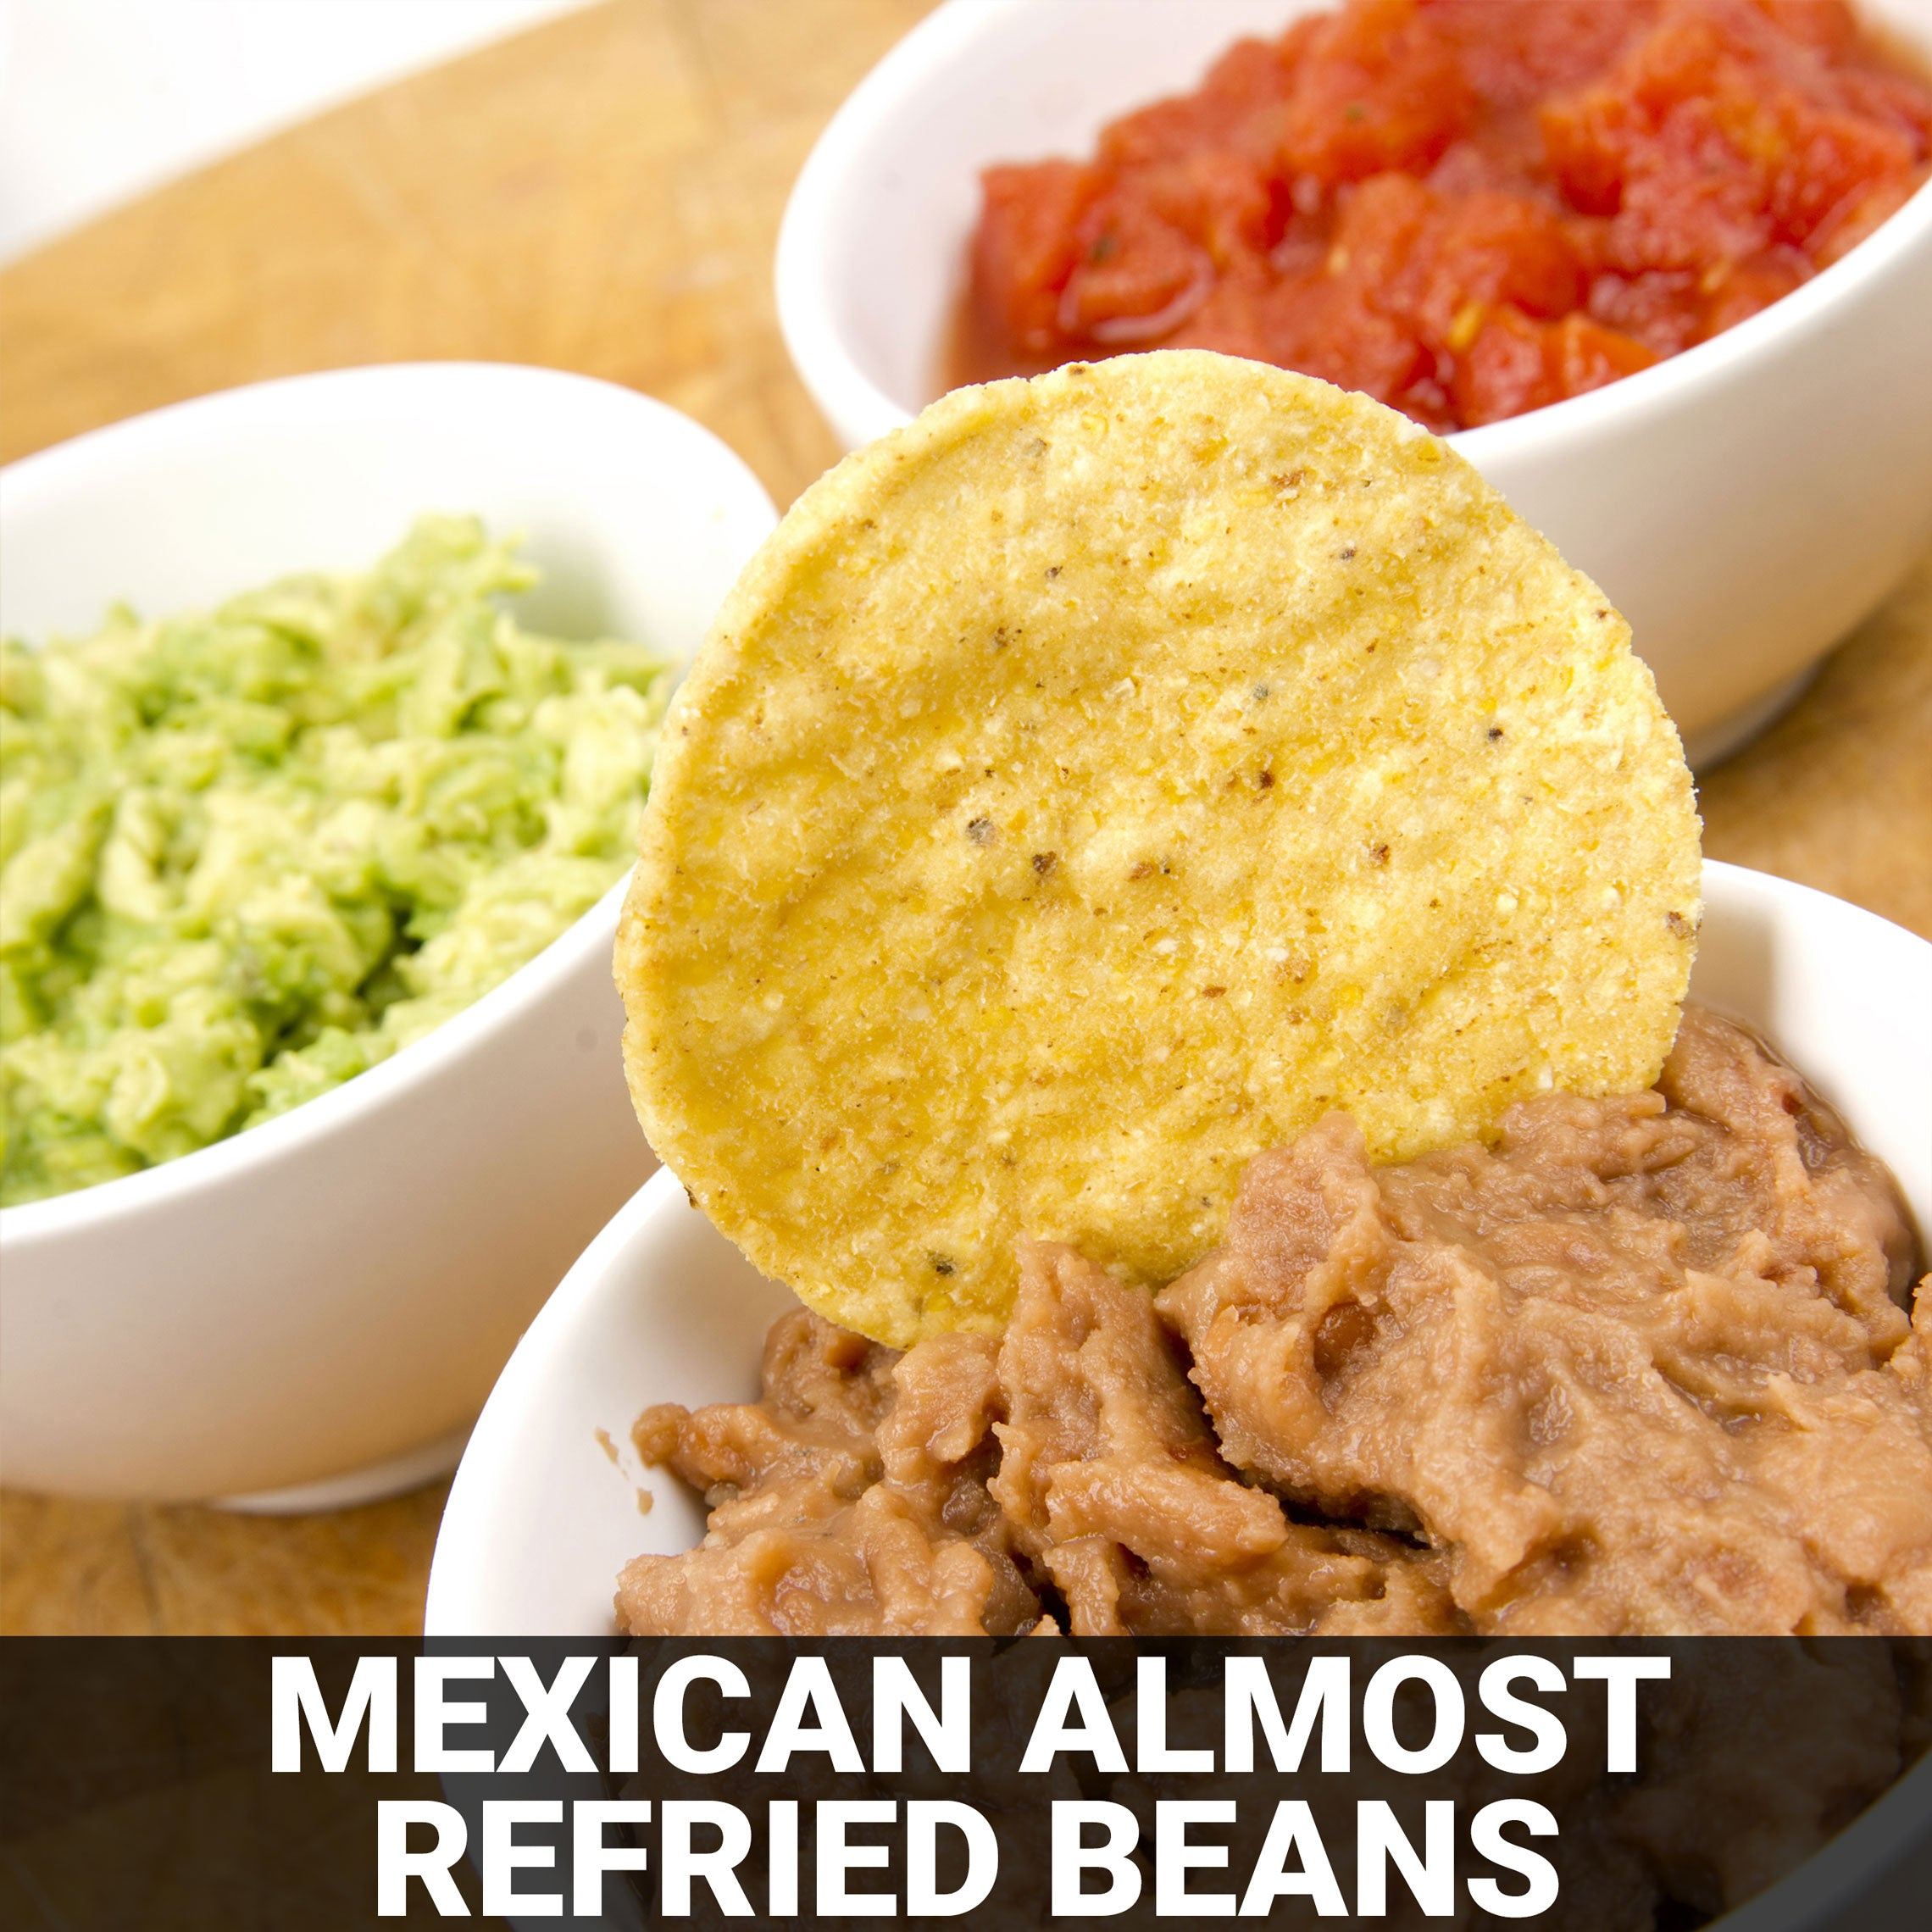 Mexican Almost Refried Beans Recipe - Foods Alive